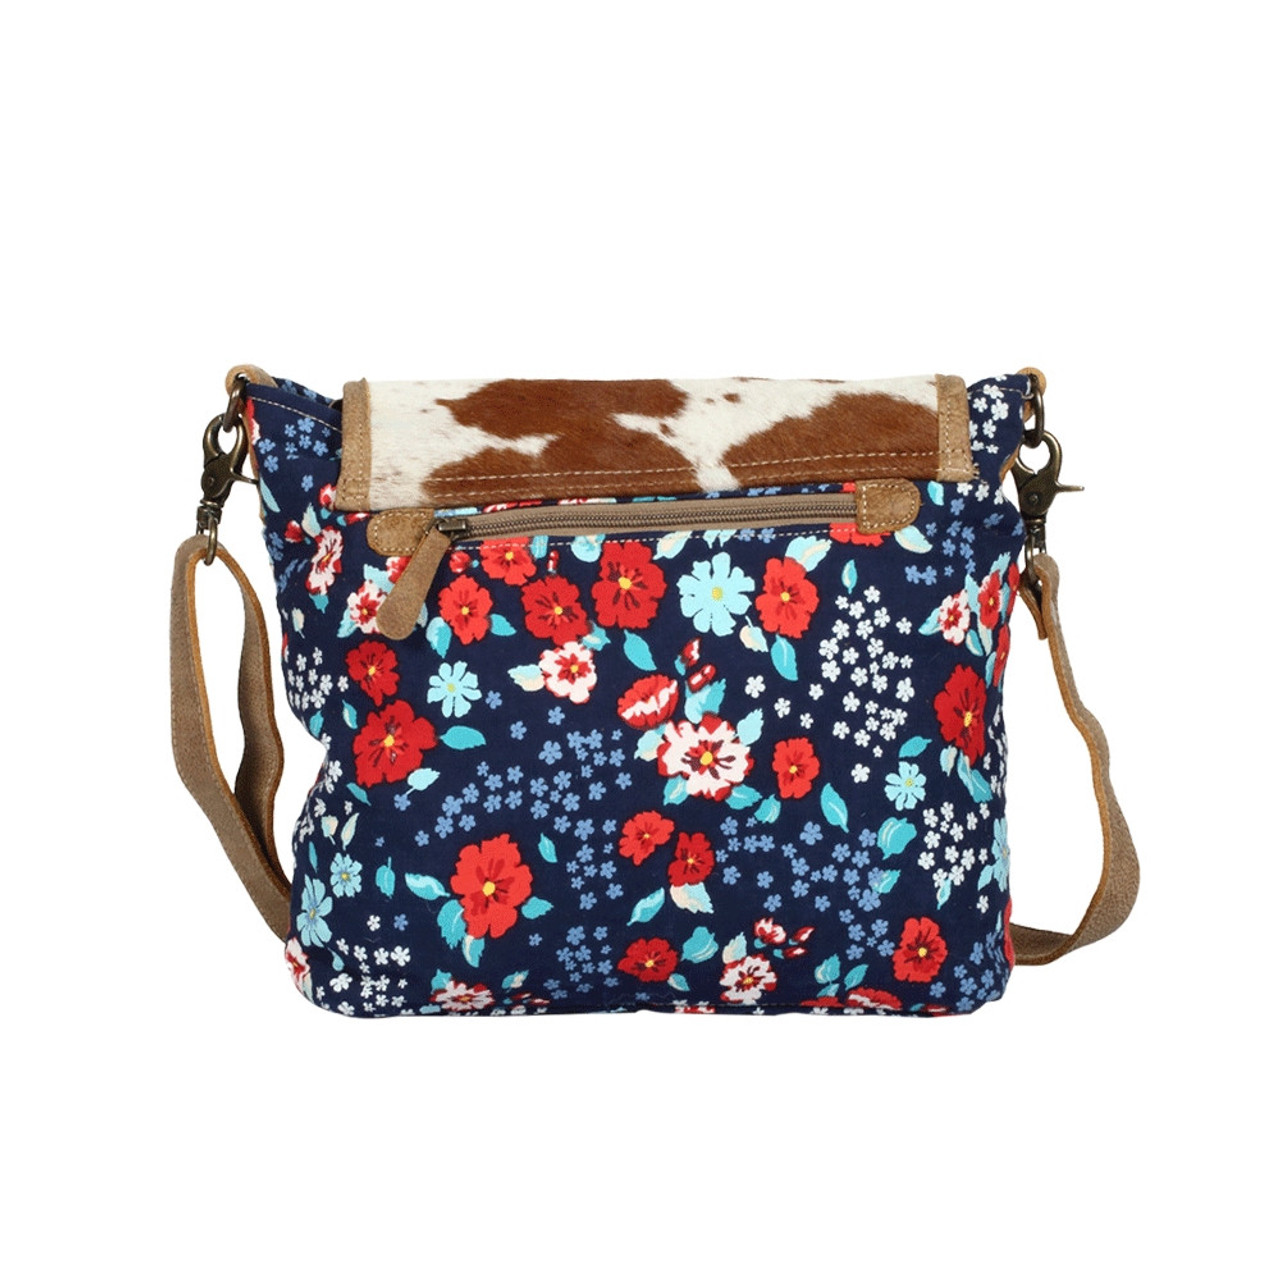 Hairon, canvas & leather accent tote with a beautiful floral canvas and a hairon accent flap closure with clasp and main zipper closure for added security. An exterior back pocket with zipper and the interior has double open pockets and a single pocket with zipper.